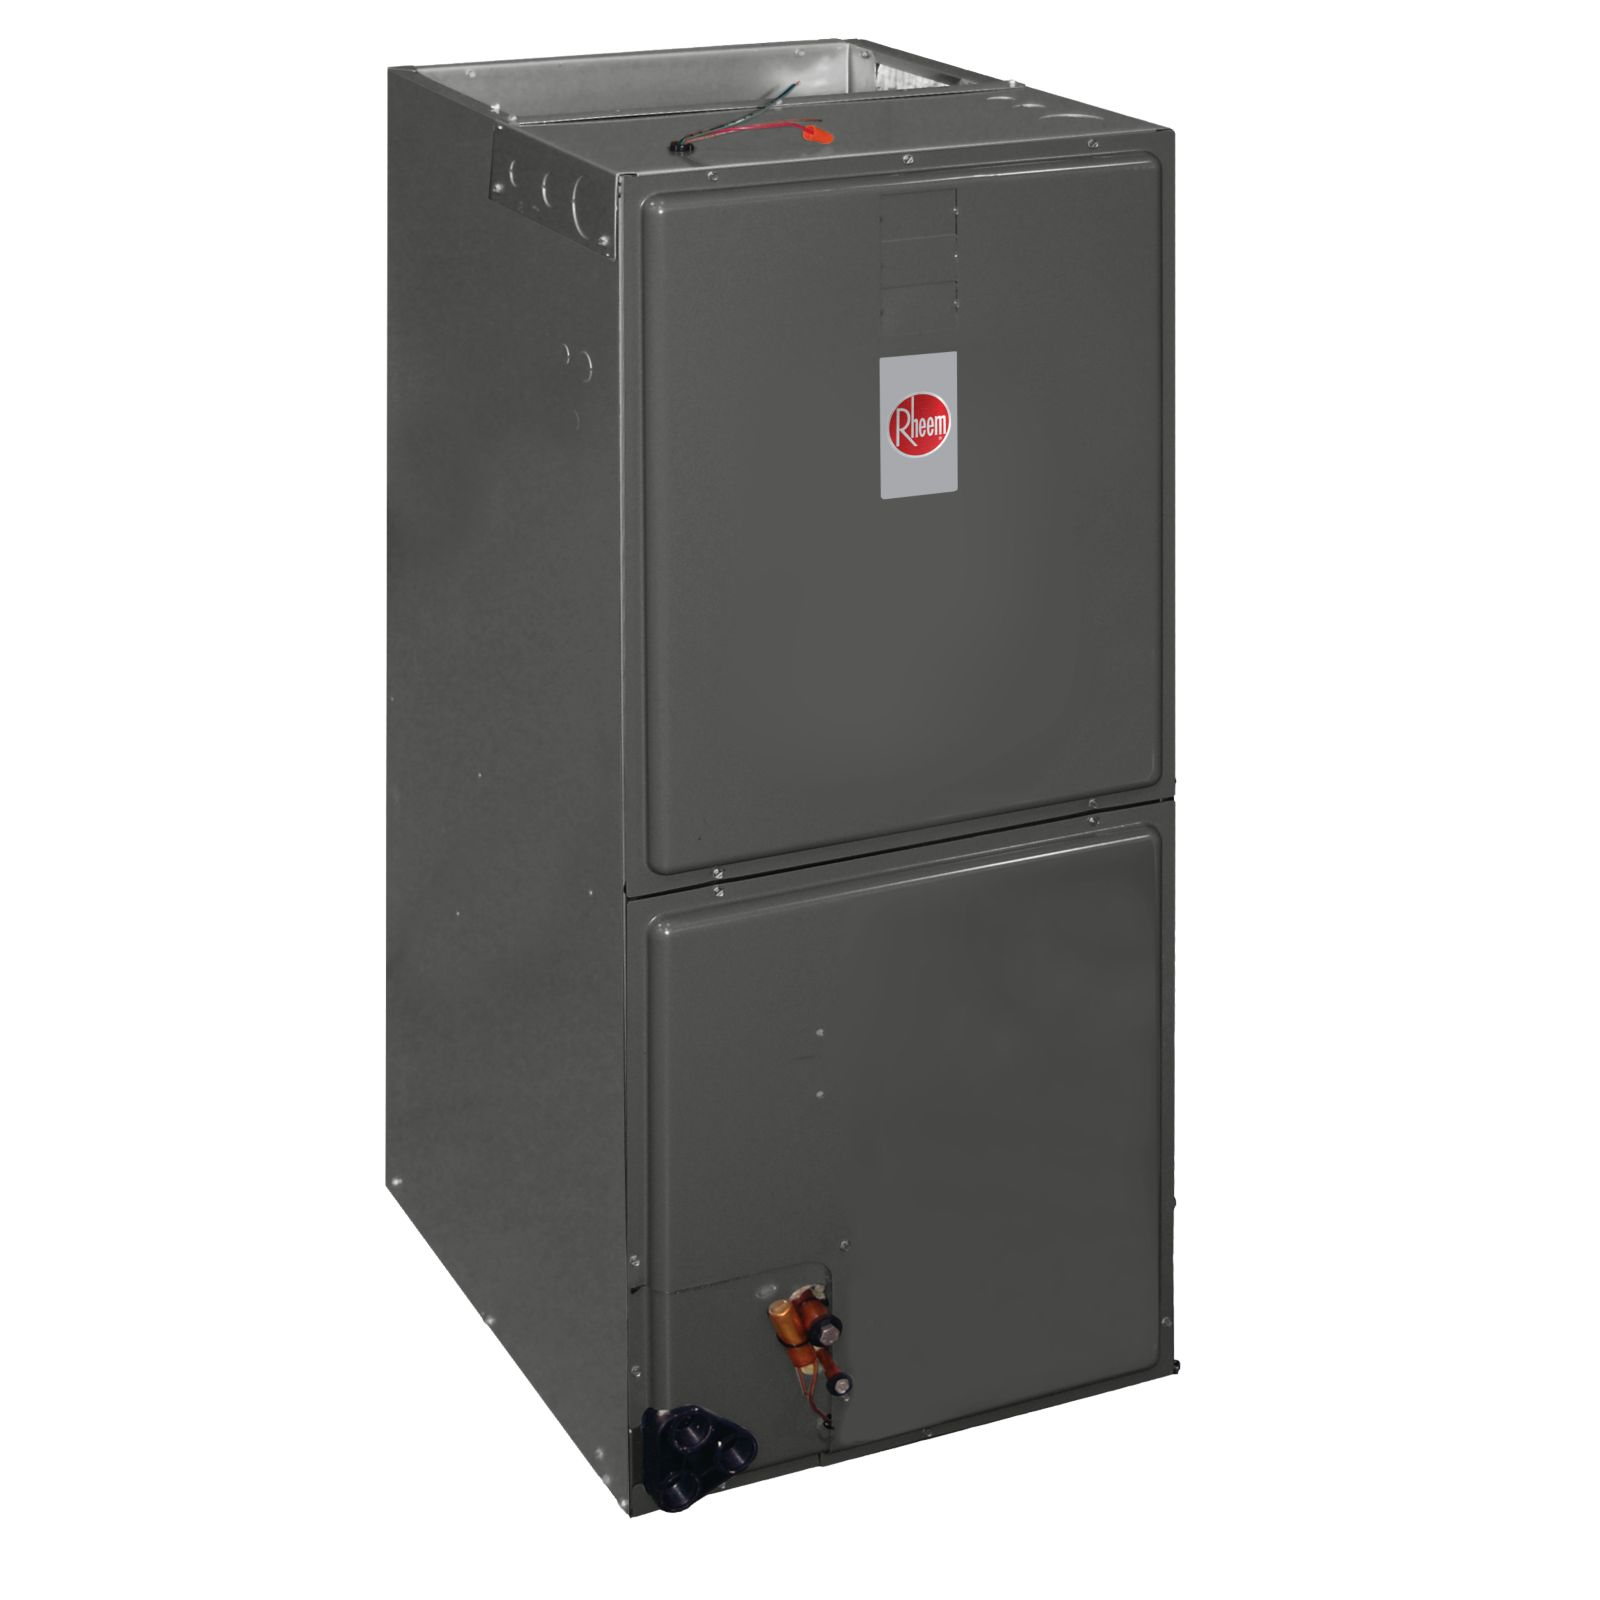 Rheem RHKL-HM3821JA - Premium Series 3 Ton Multiposition Air Handler - Up to 16 SEER - R410A - Quiet ECM Motor